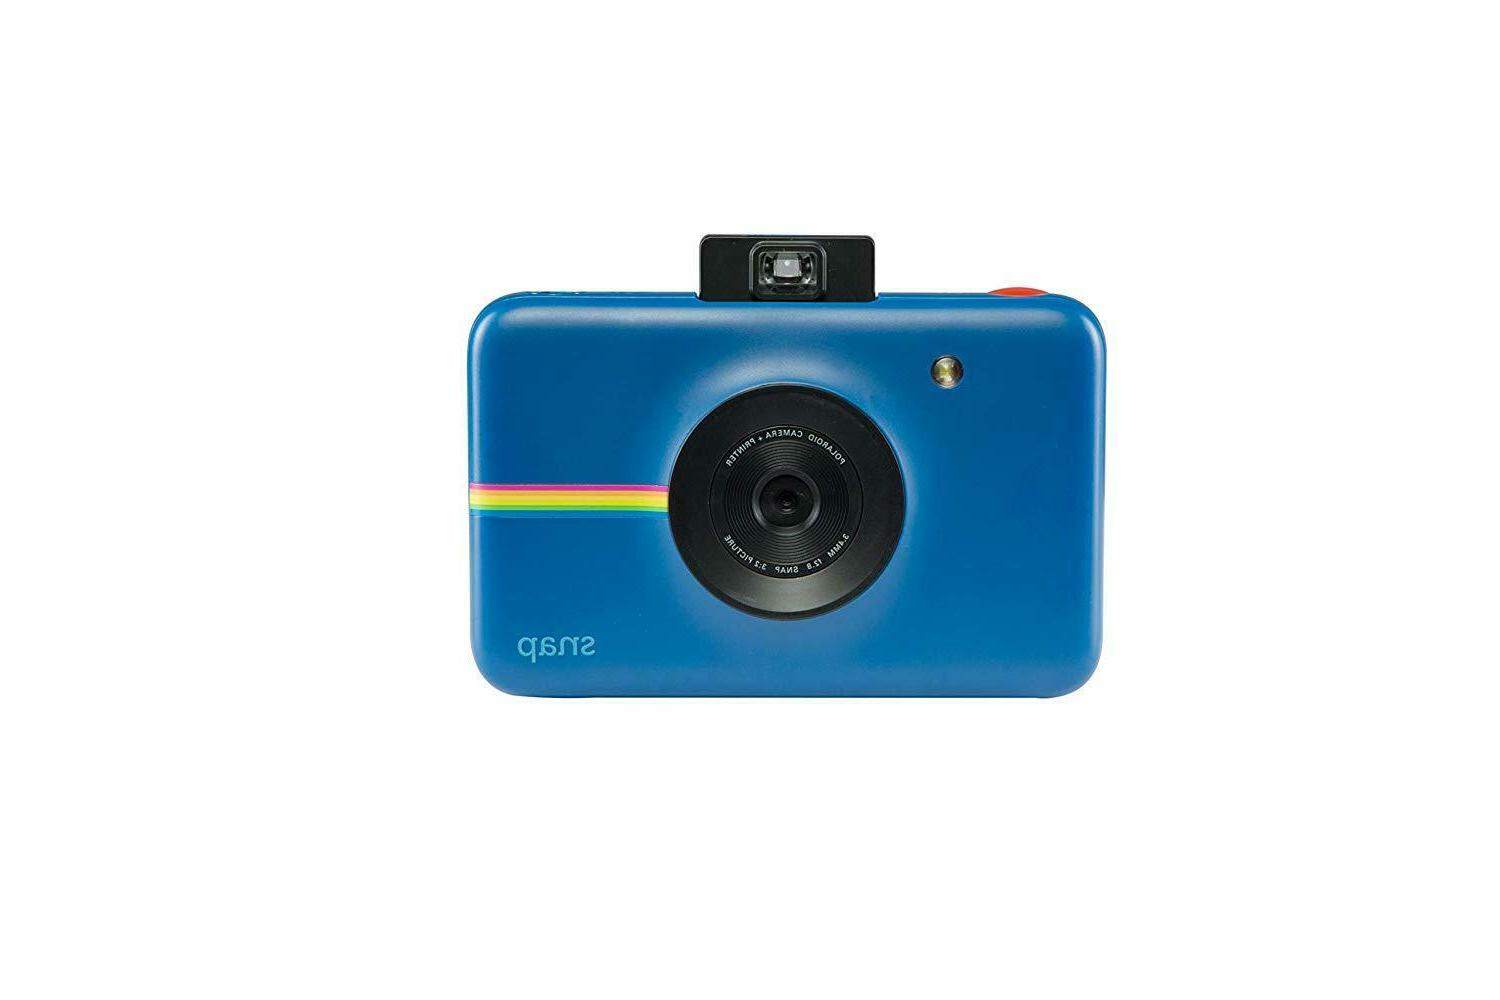 snap instant digital navy blue camera